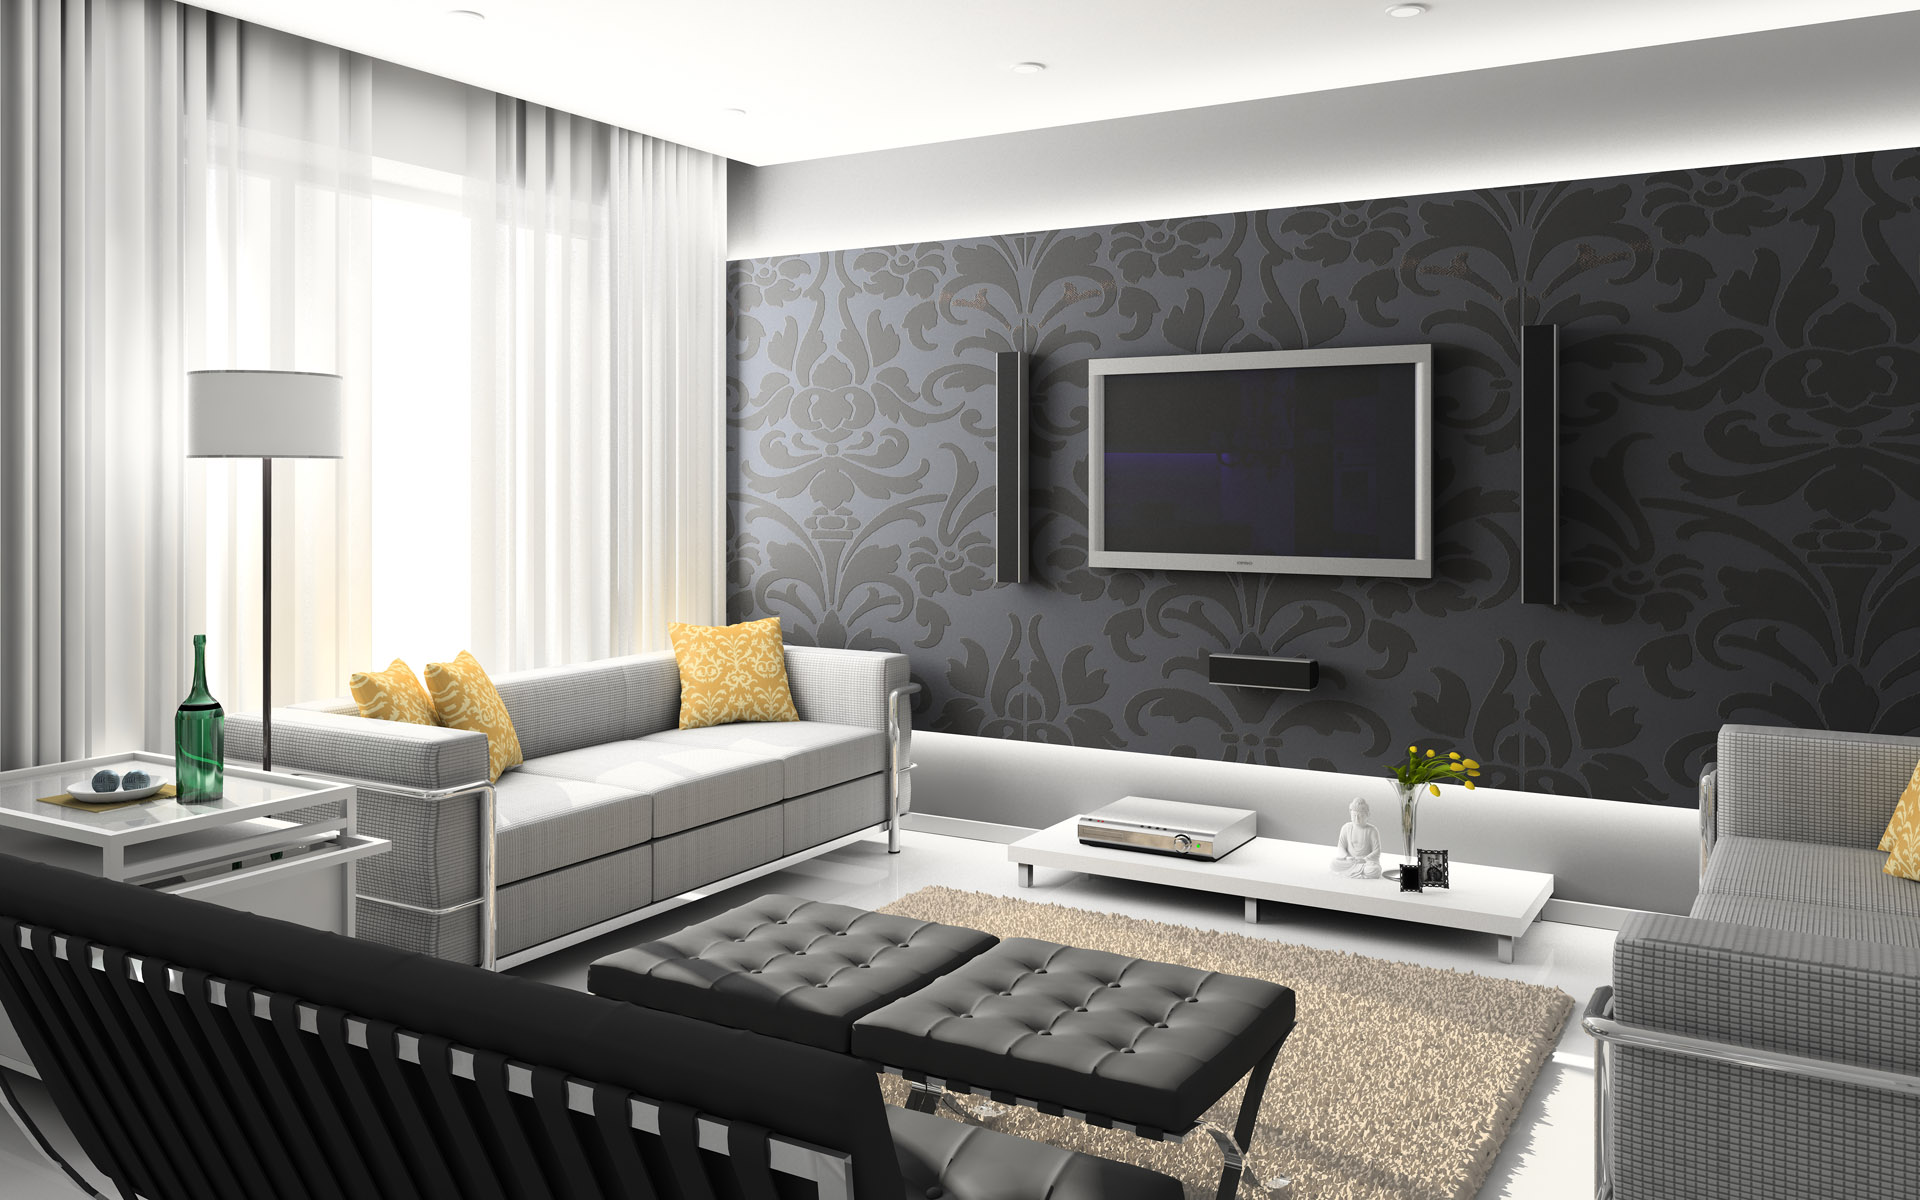 Modern Home Interior Res: 1920x1200 / Size:380kb. Views: 98267